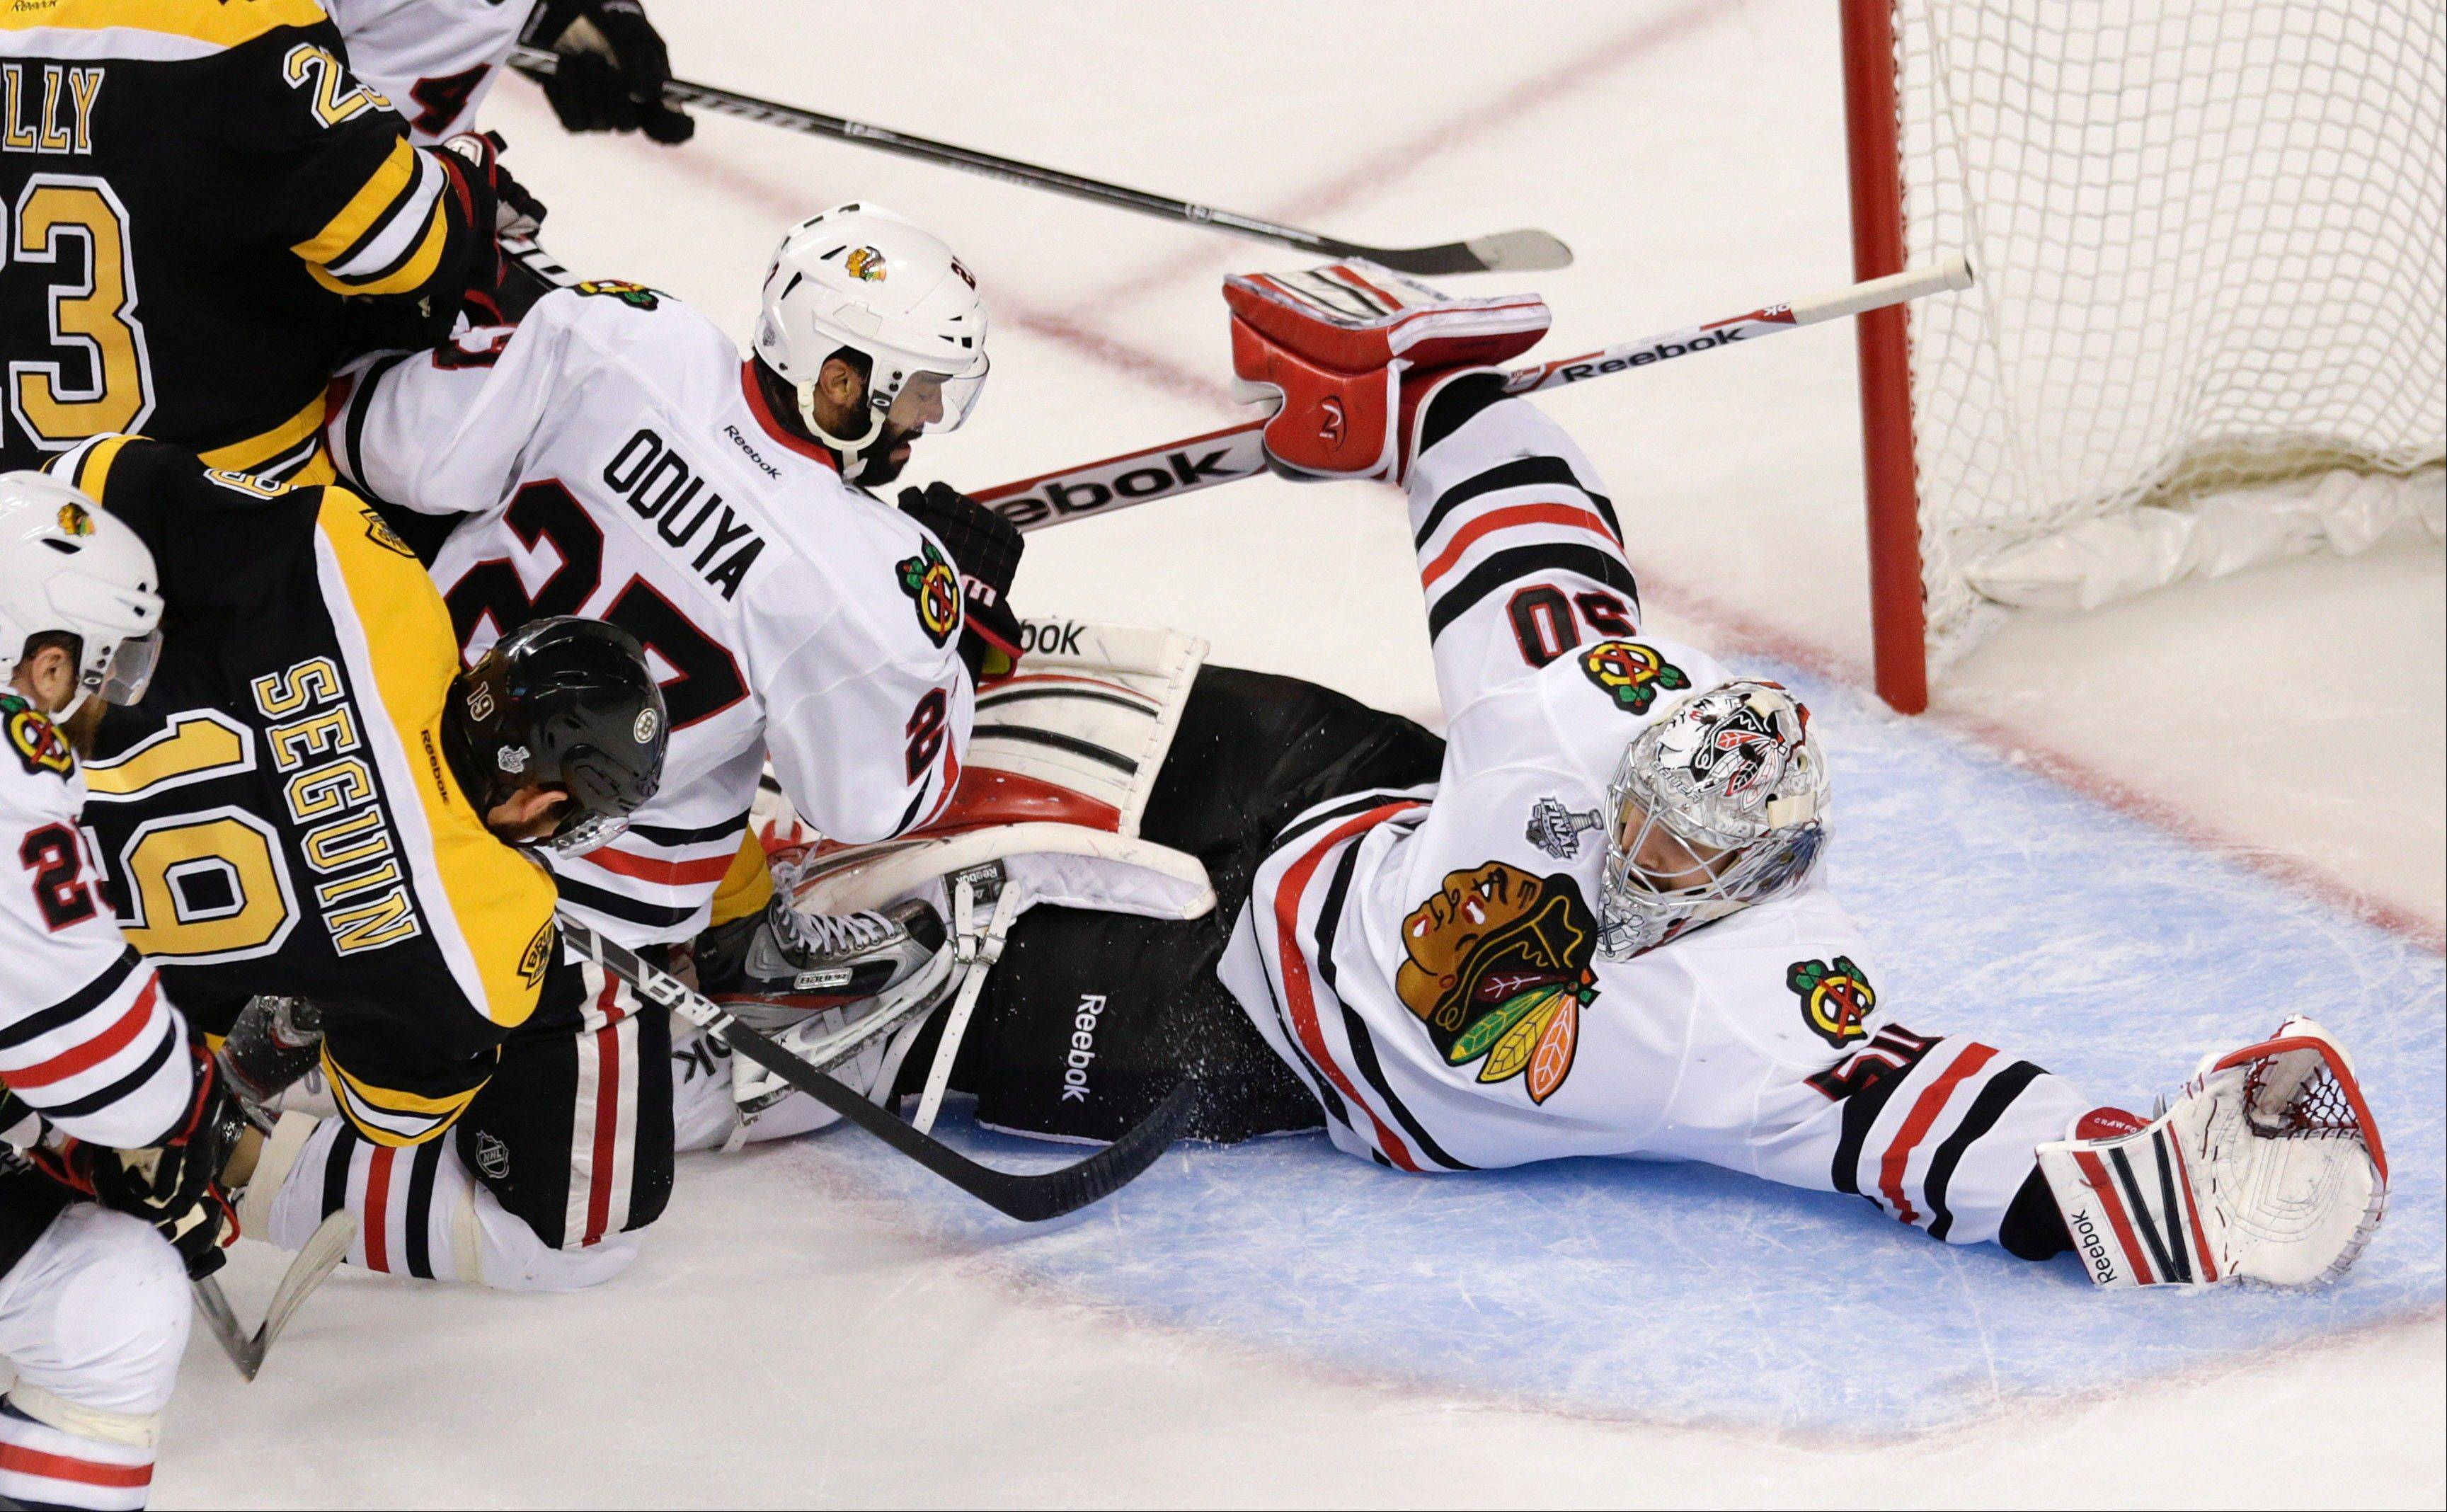 Boston Bruins center Tyler Seguin (19) and Chicago Blackhawks defenseman Johnny Oduya (27), of Sweden, careen into Chicago Blackhawks goalie Corey Crawford (50) during the first period in Game 6 of the NHL Stanley Cup Finals Monday in Boston.